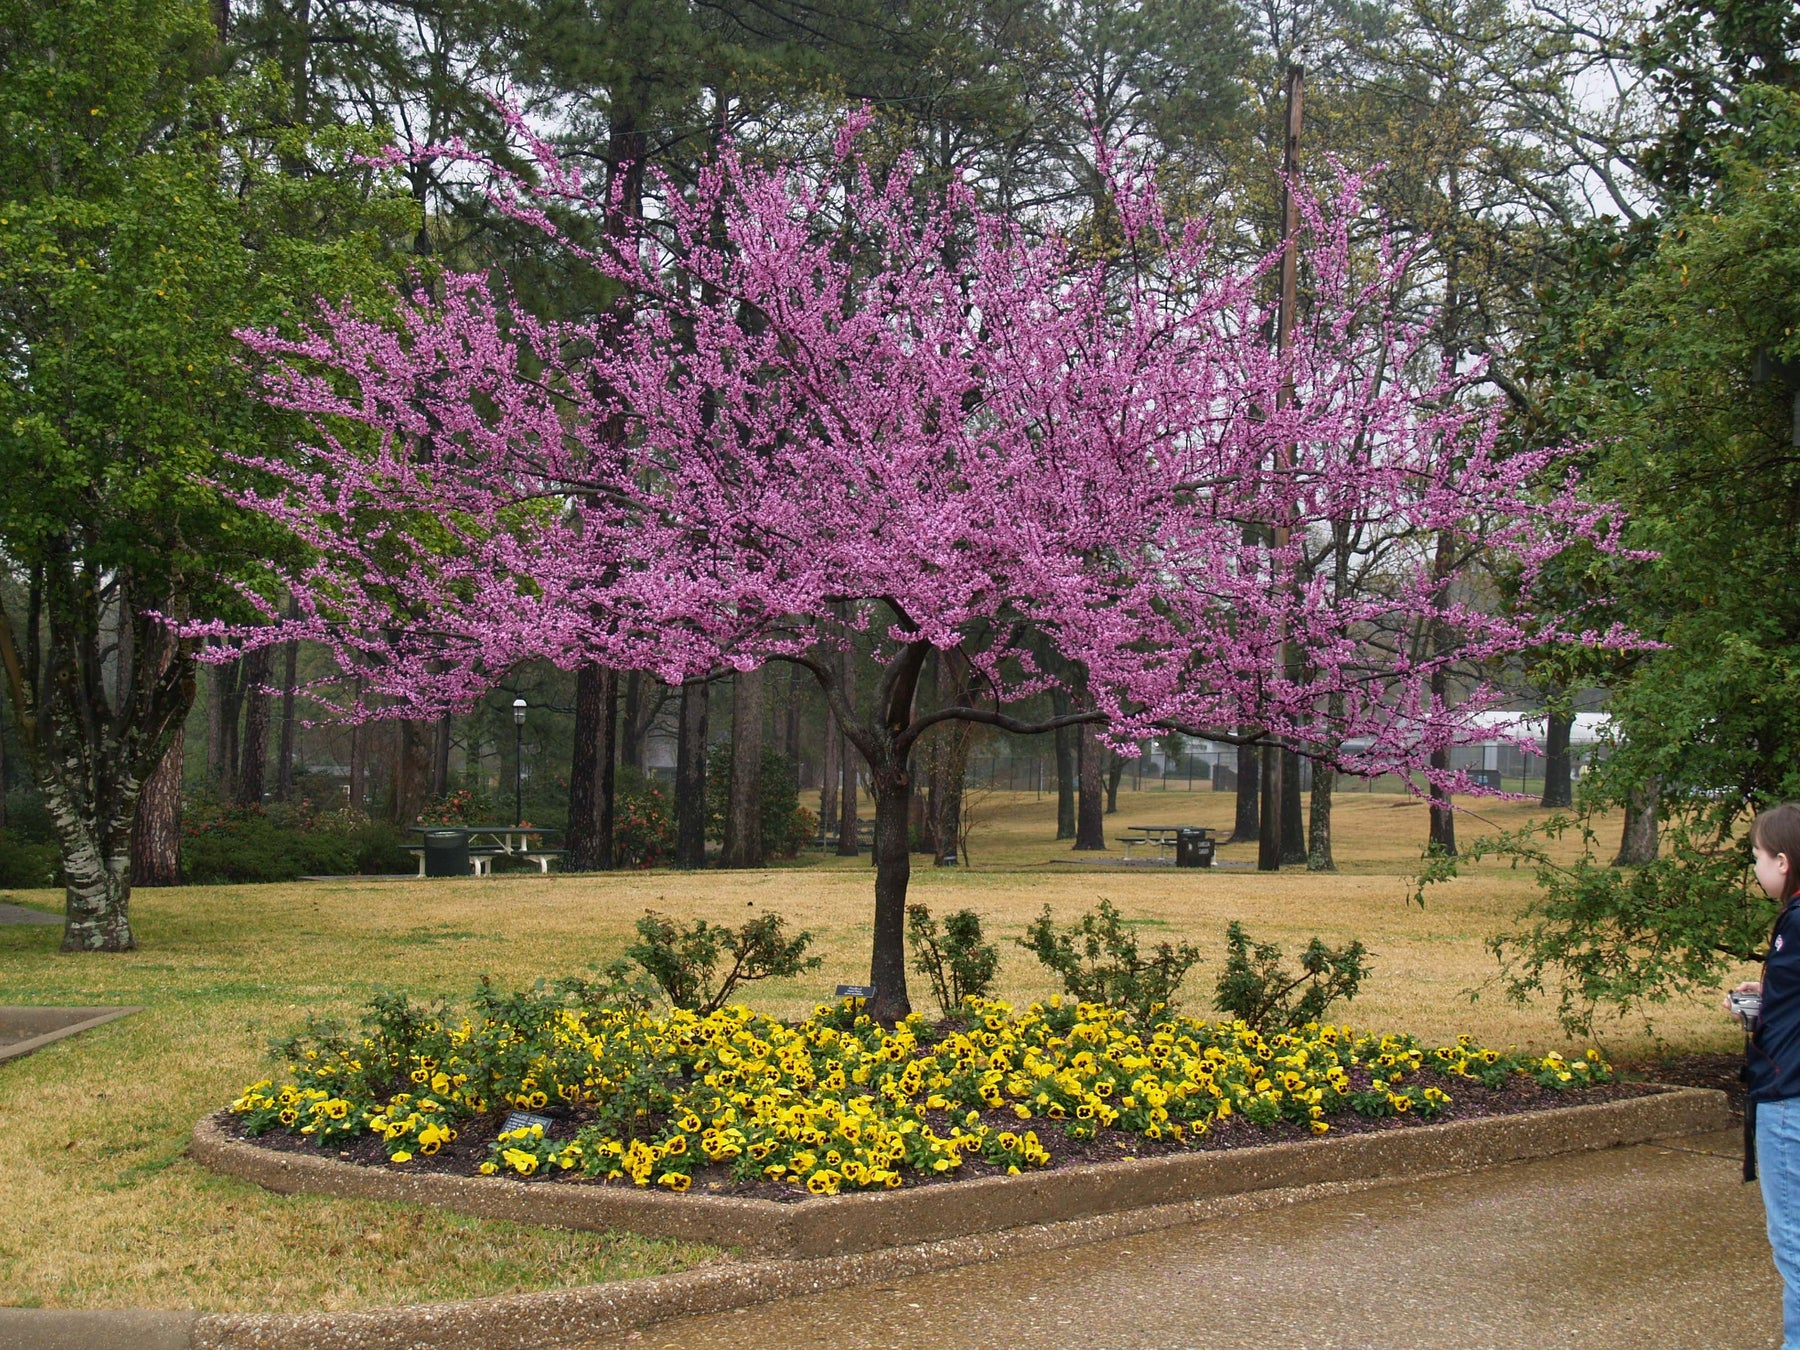 Forest Pansy Redbud Tree | The Purple Redbud Tree